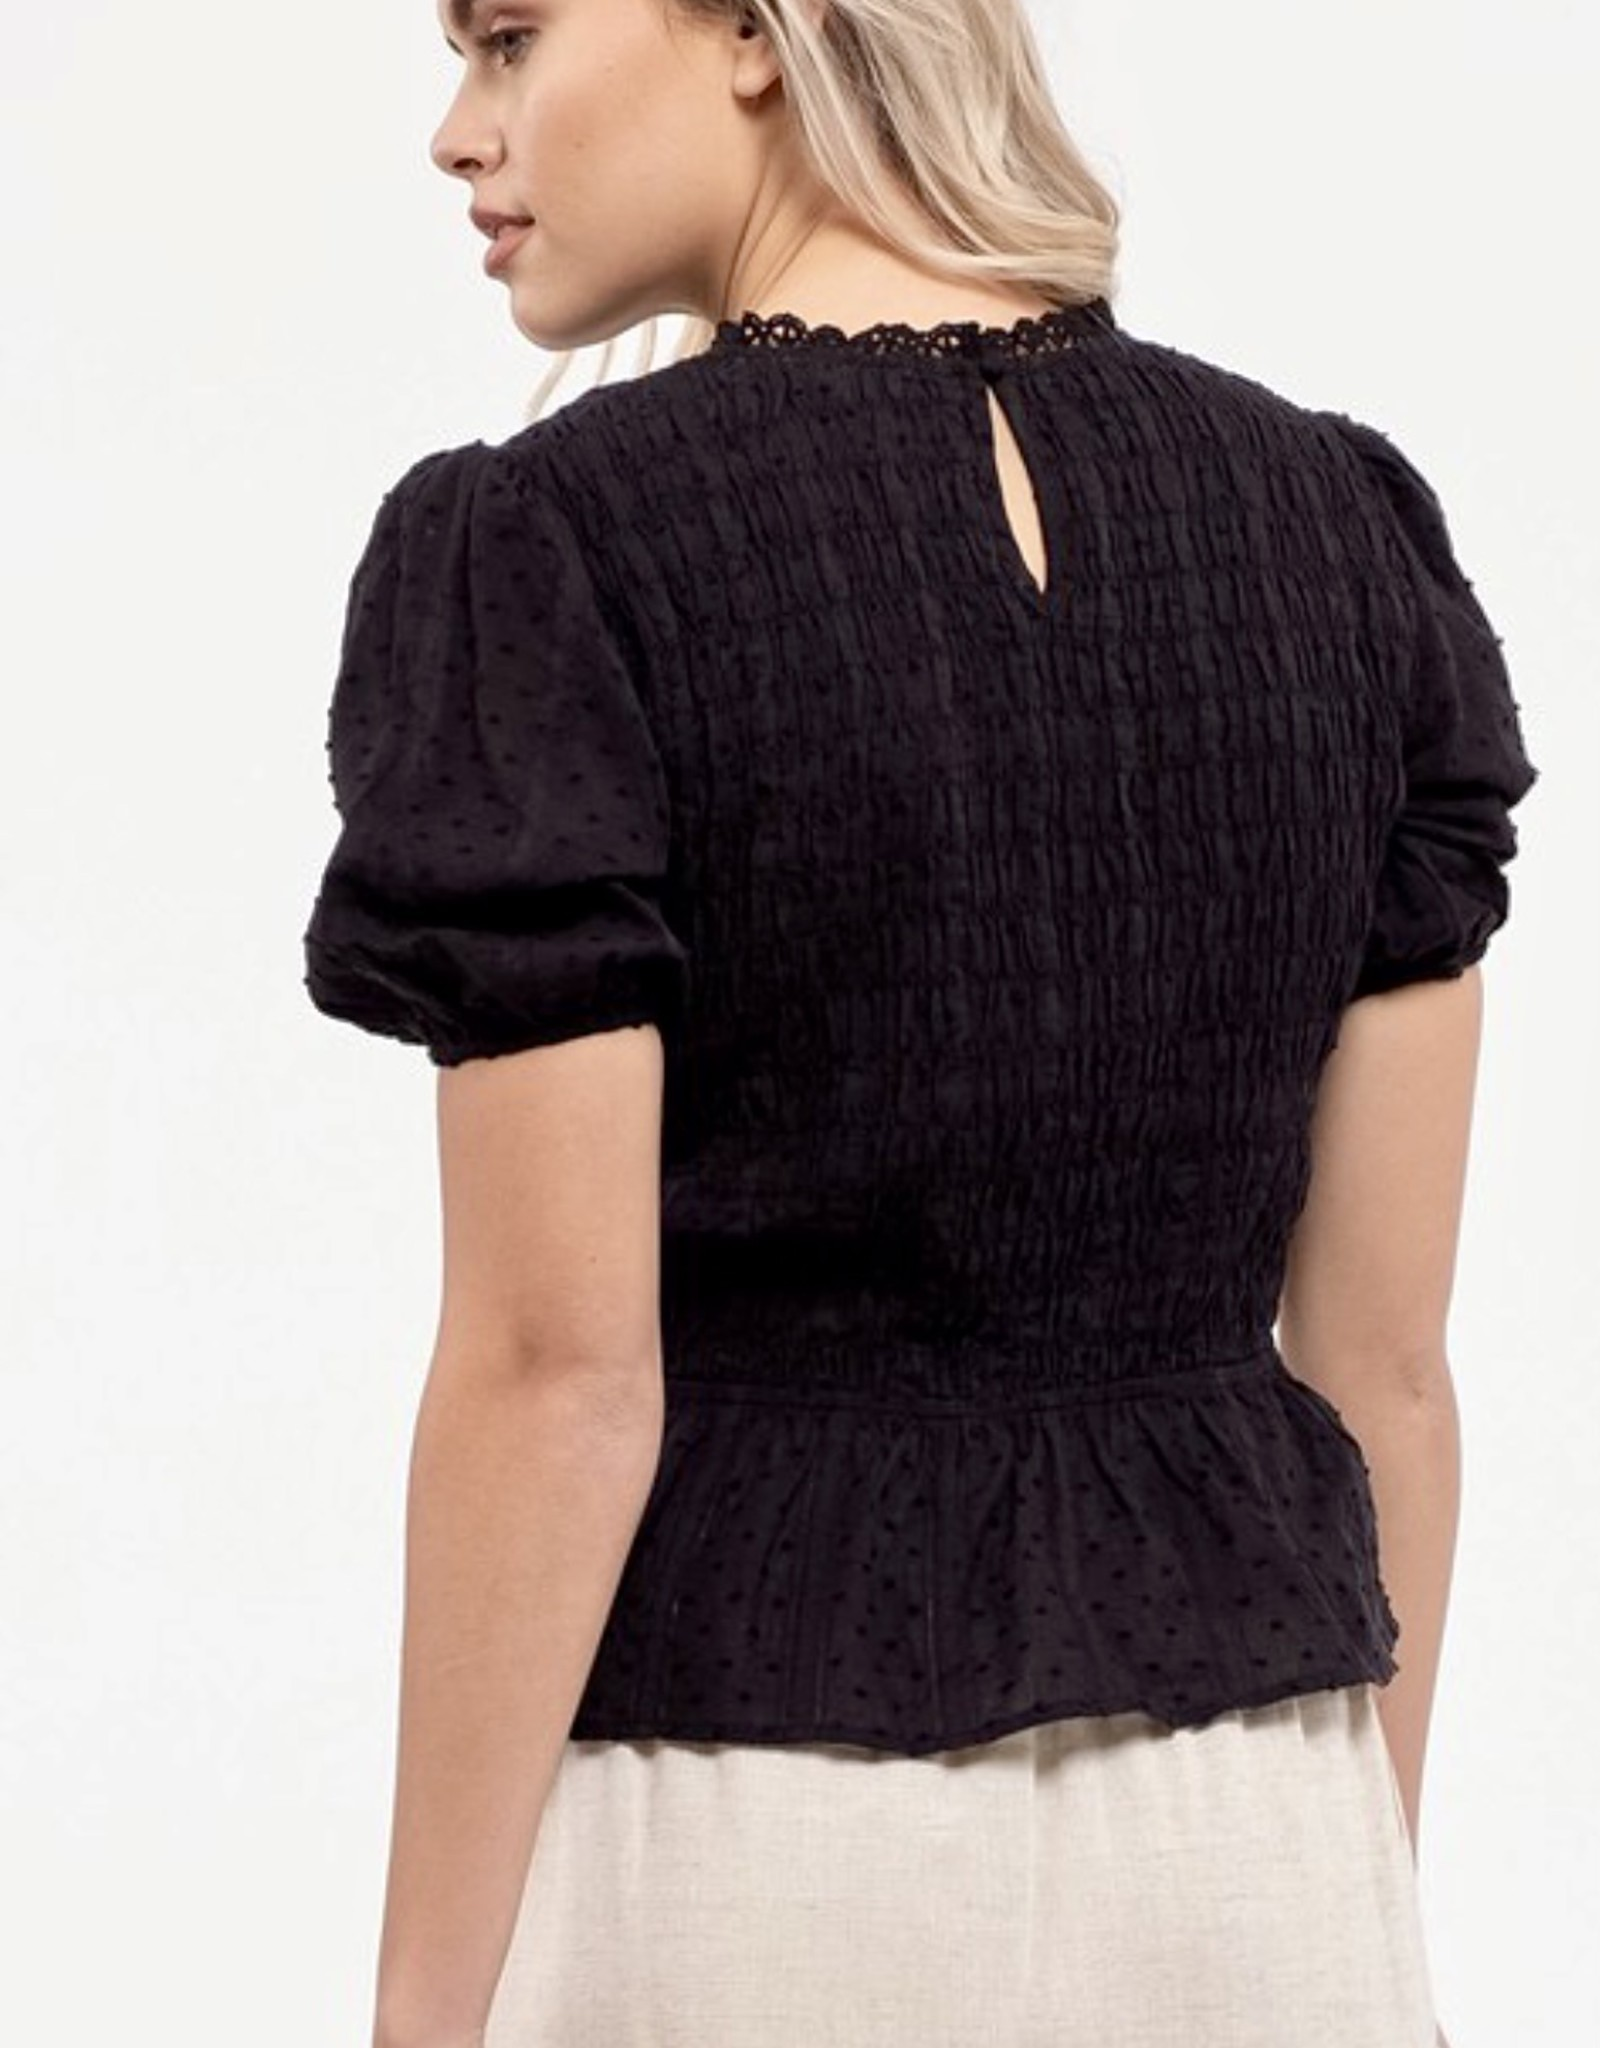 HUSH Peplum s/s smocked blouse